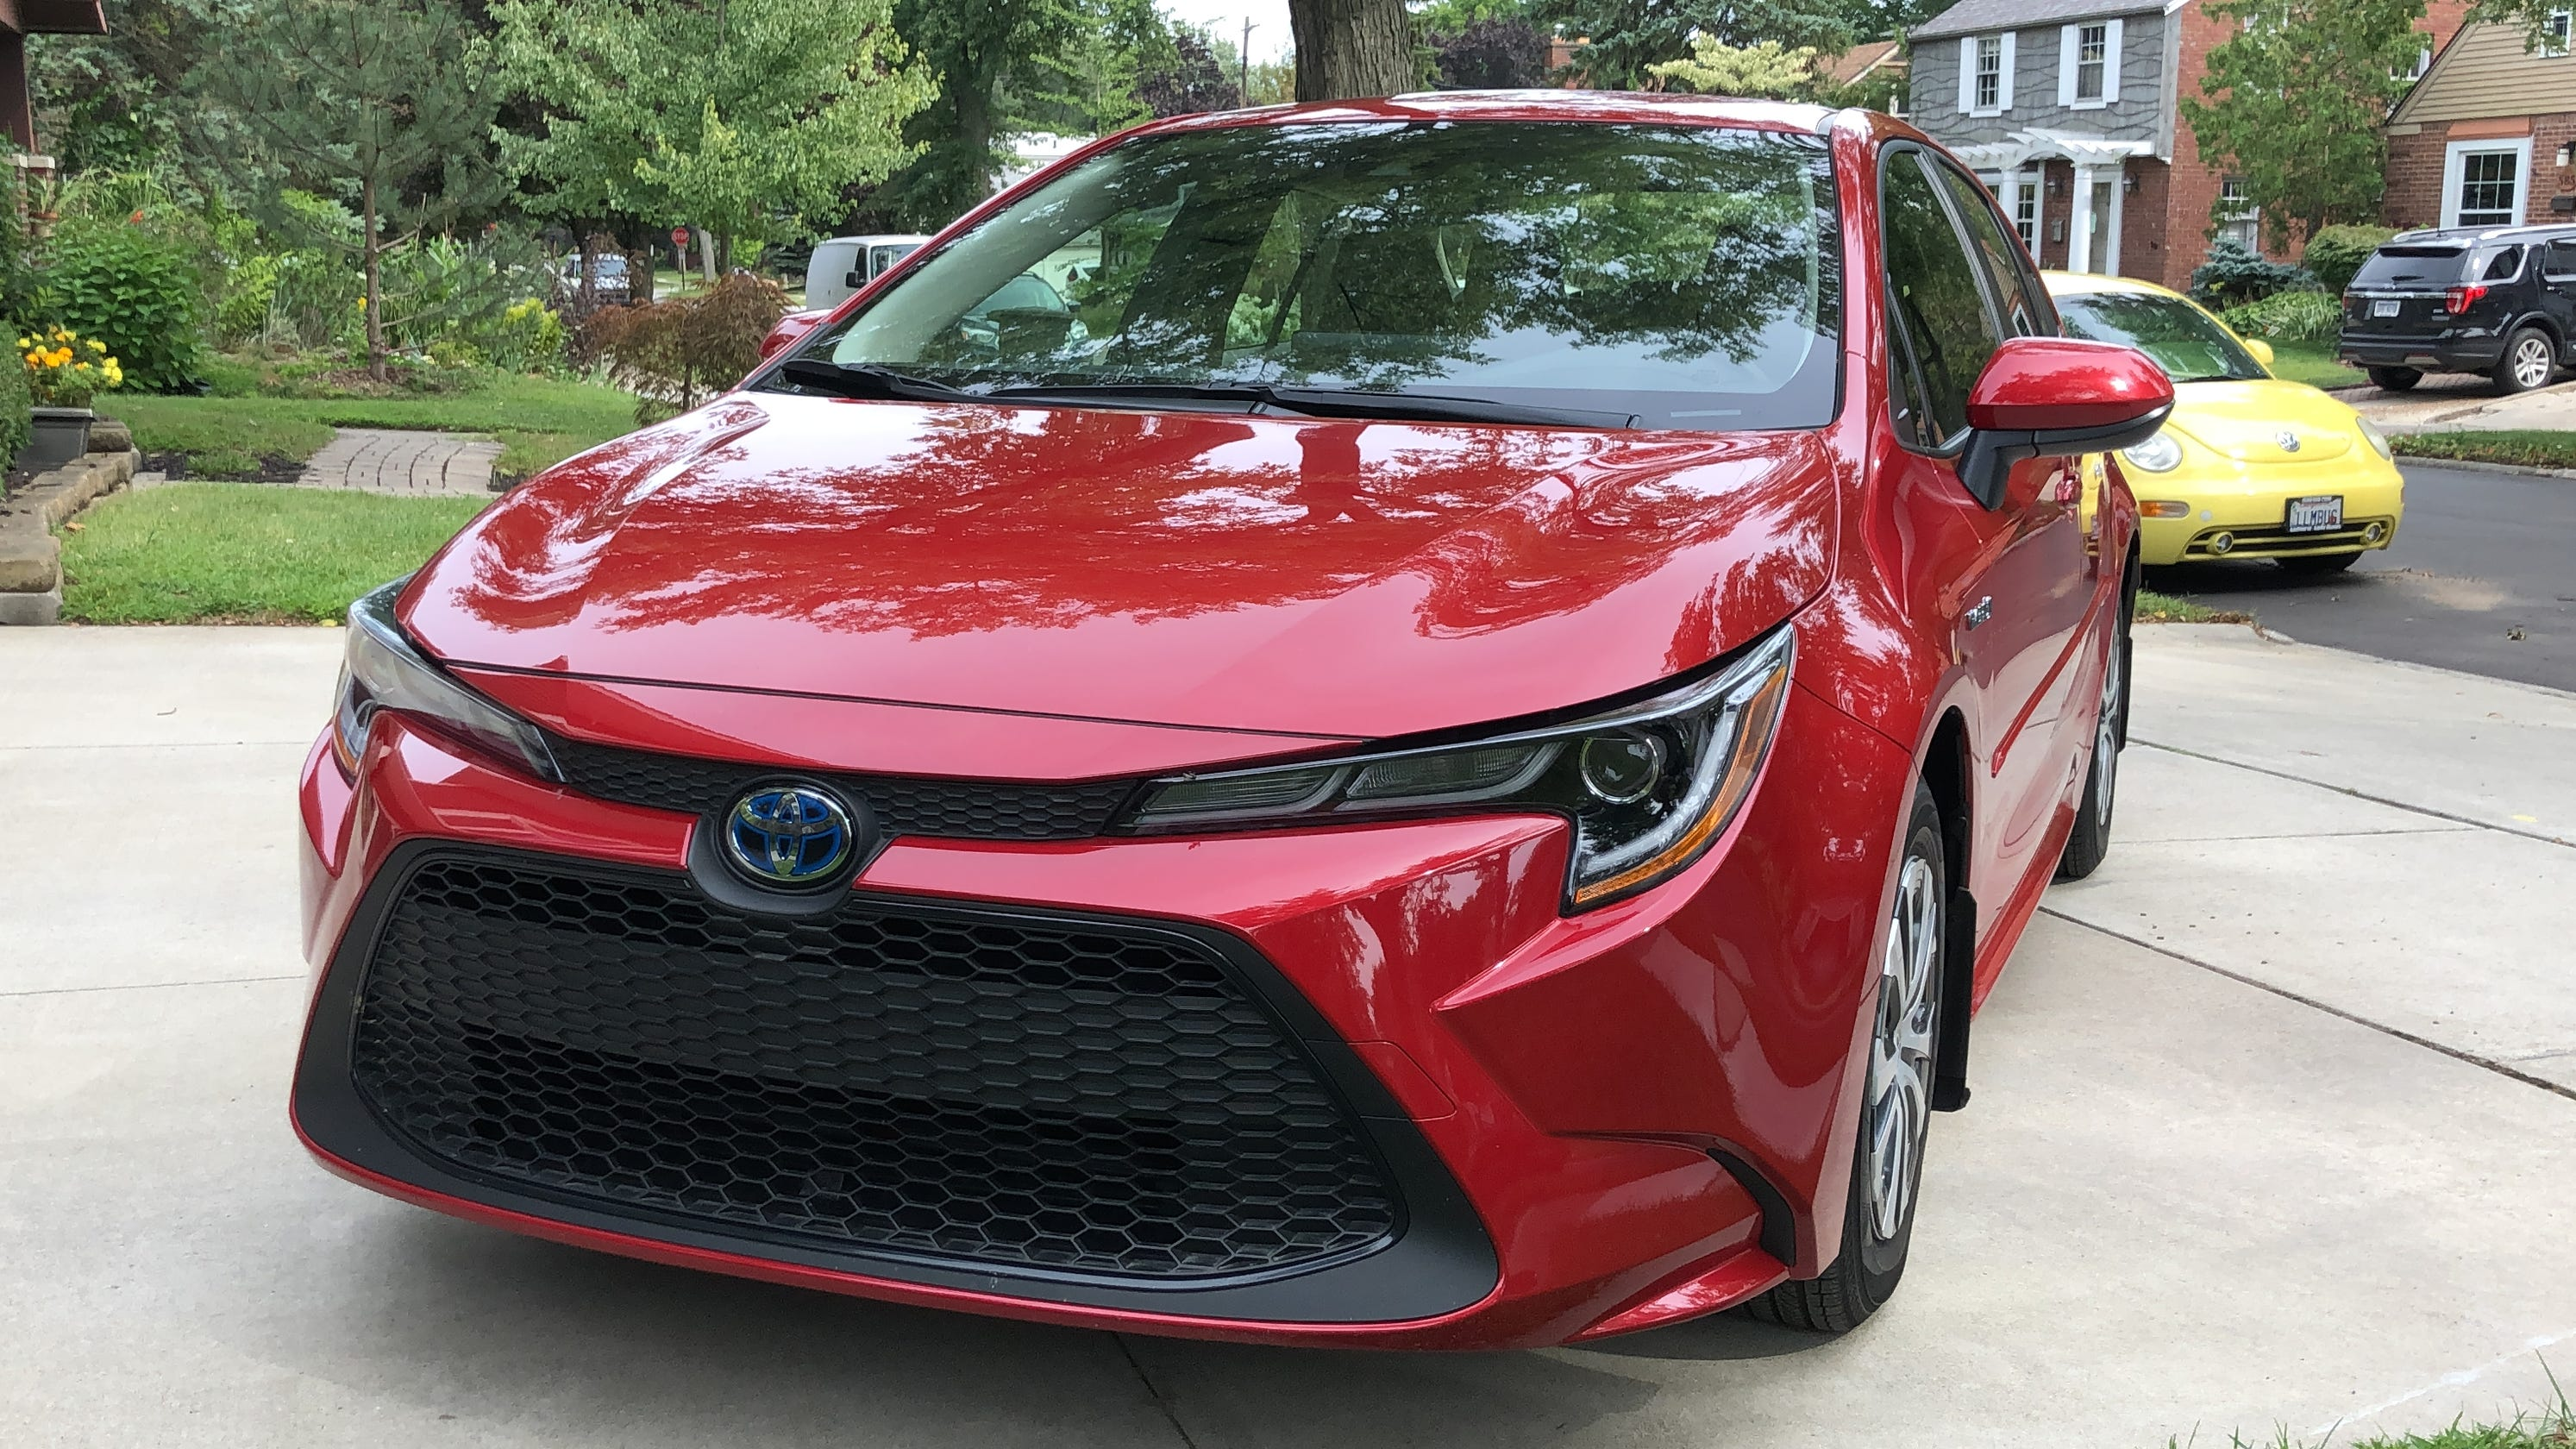 2020 Toyota Corolla hybrid: Every car should be like this